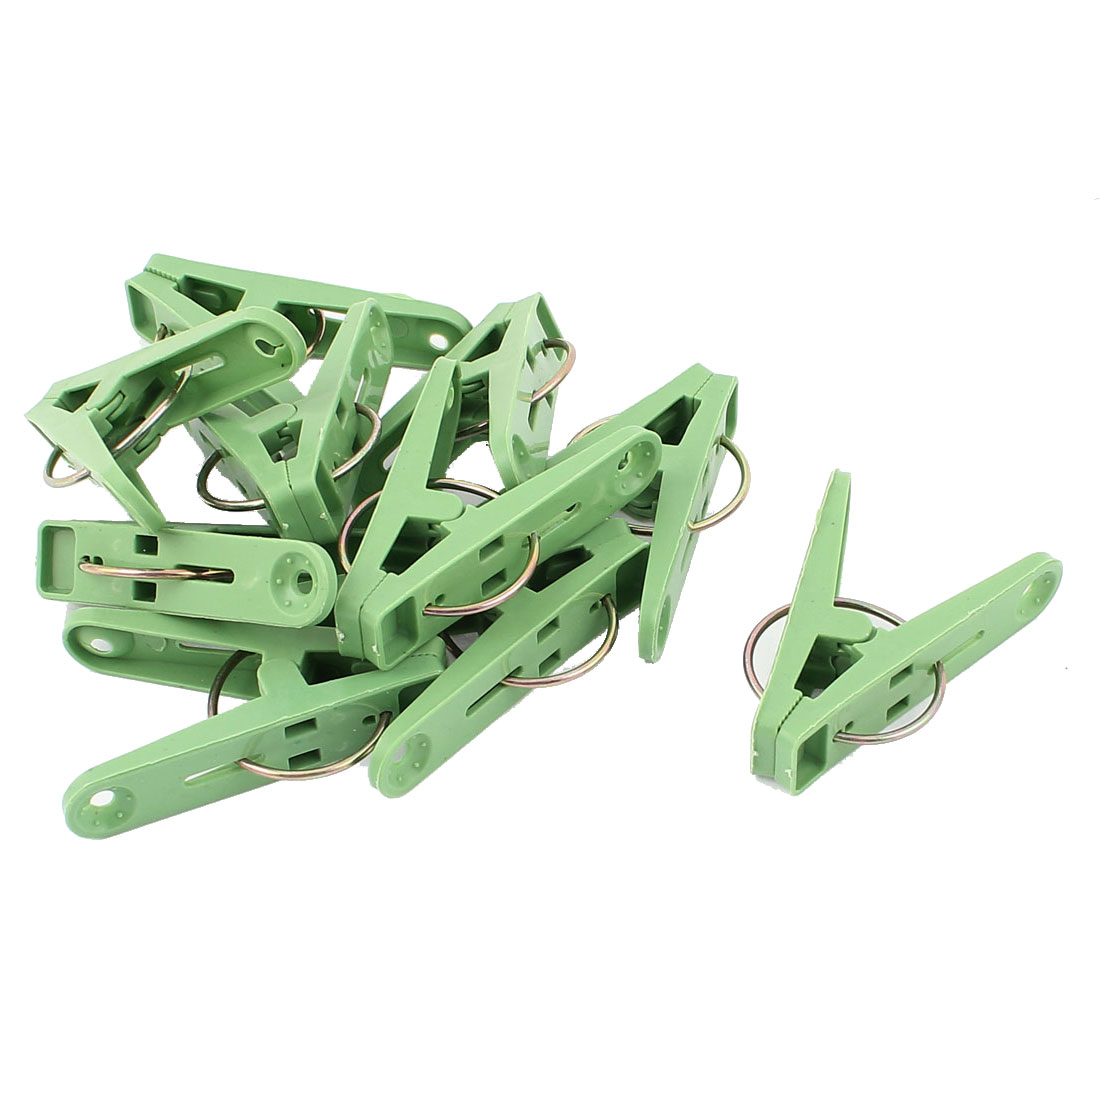 10 Pcs Household Plastic Nonslip Multipurpose Clothing Clothespins Clips Green